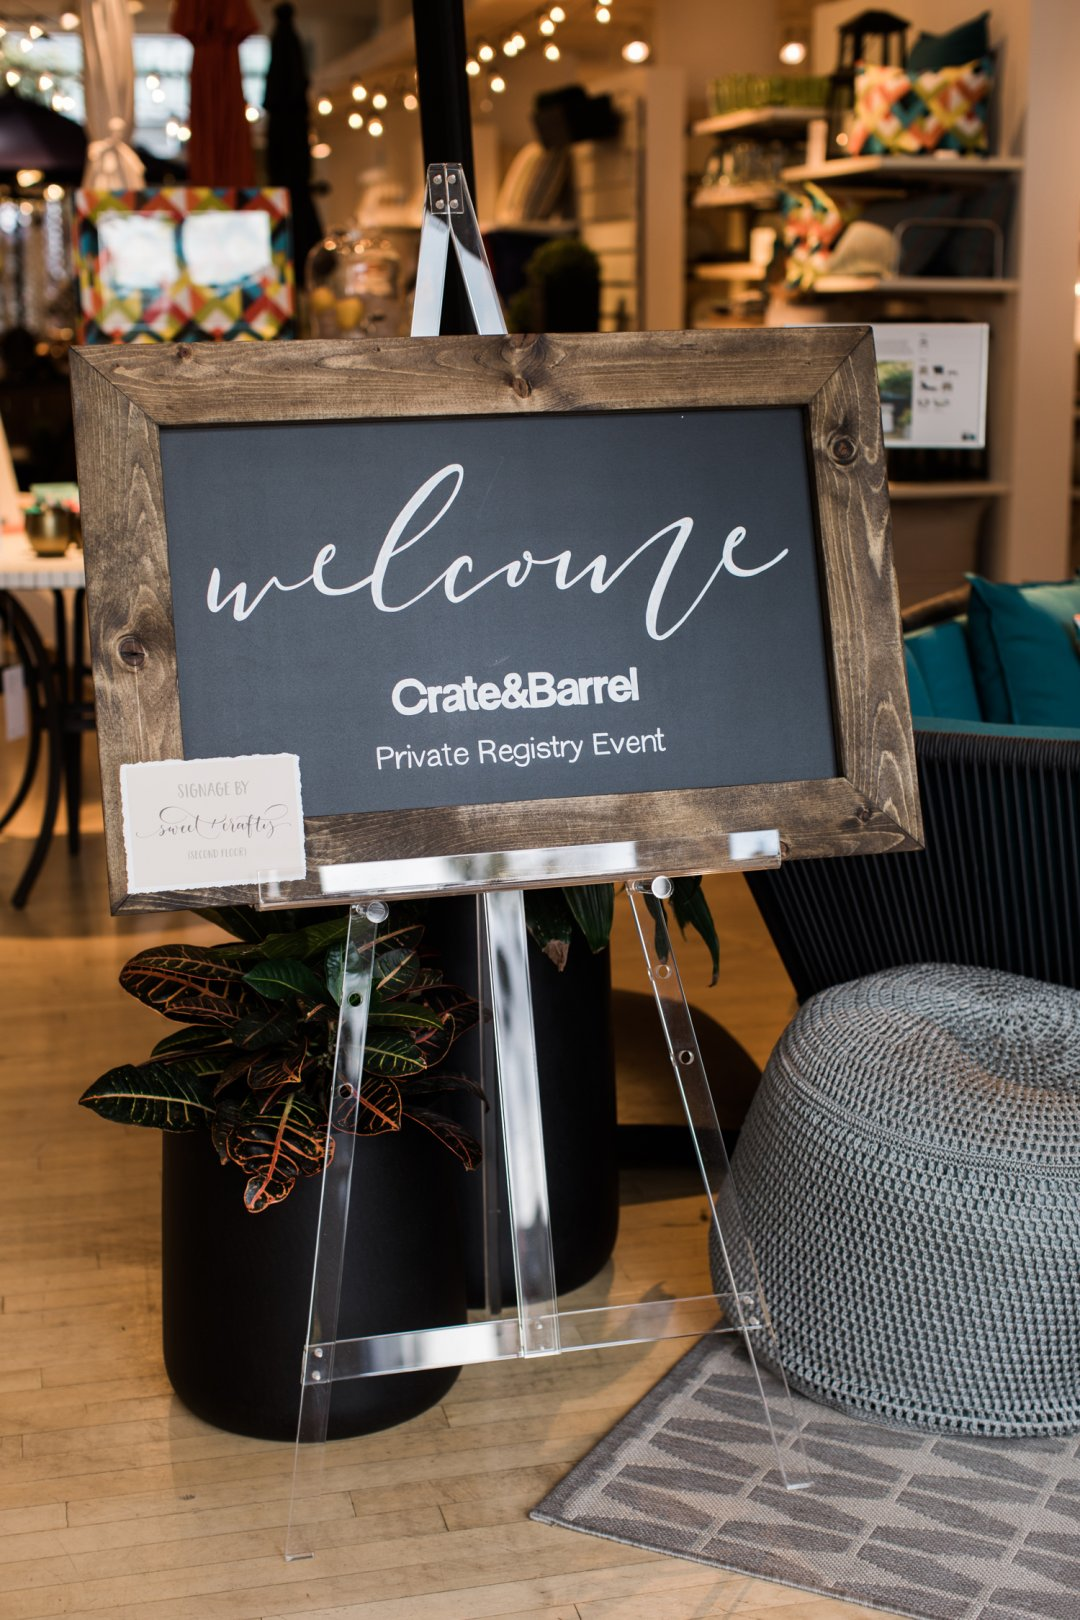 Crate and Barrel Private Registry Event welcome sign